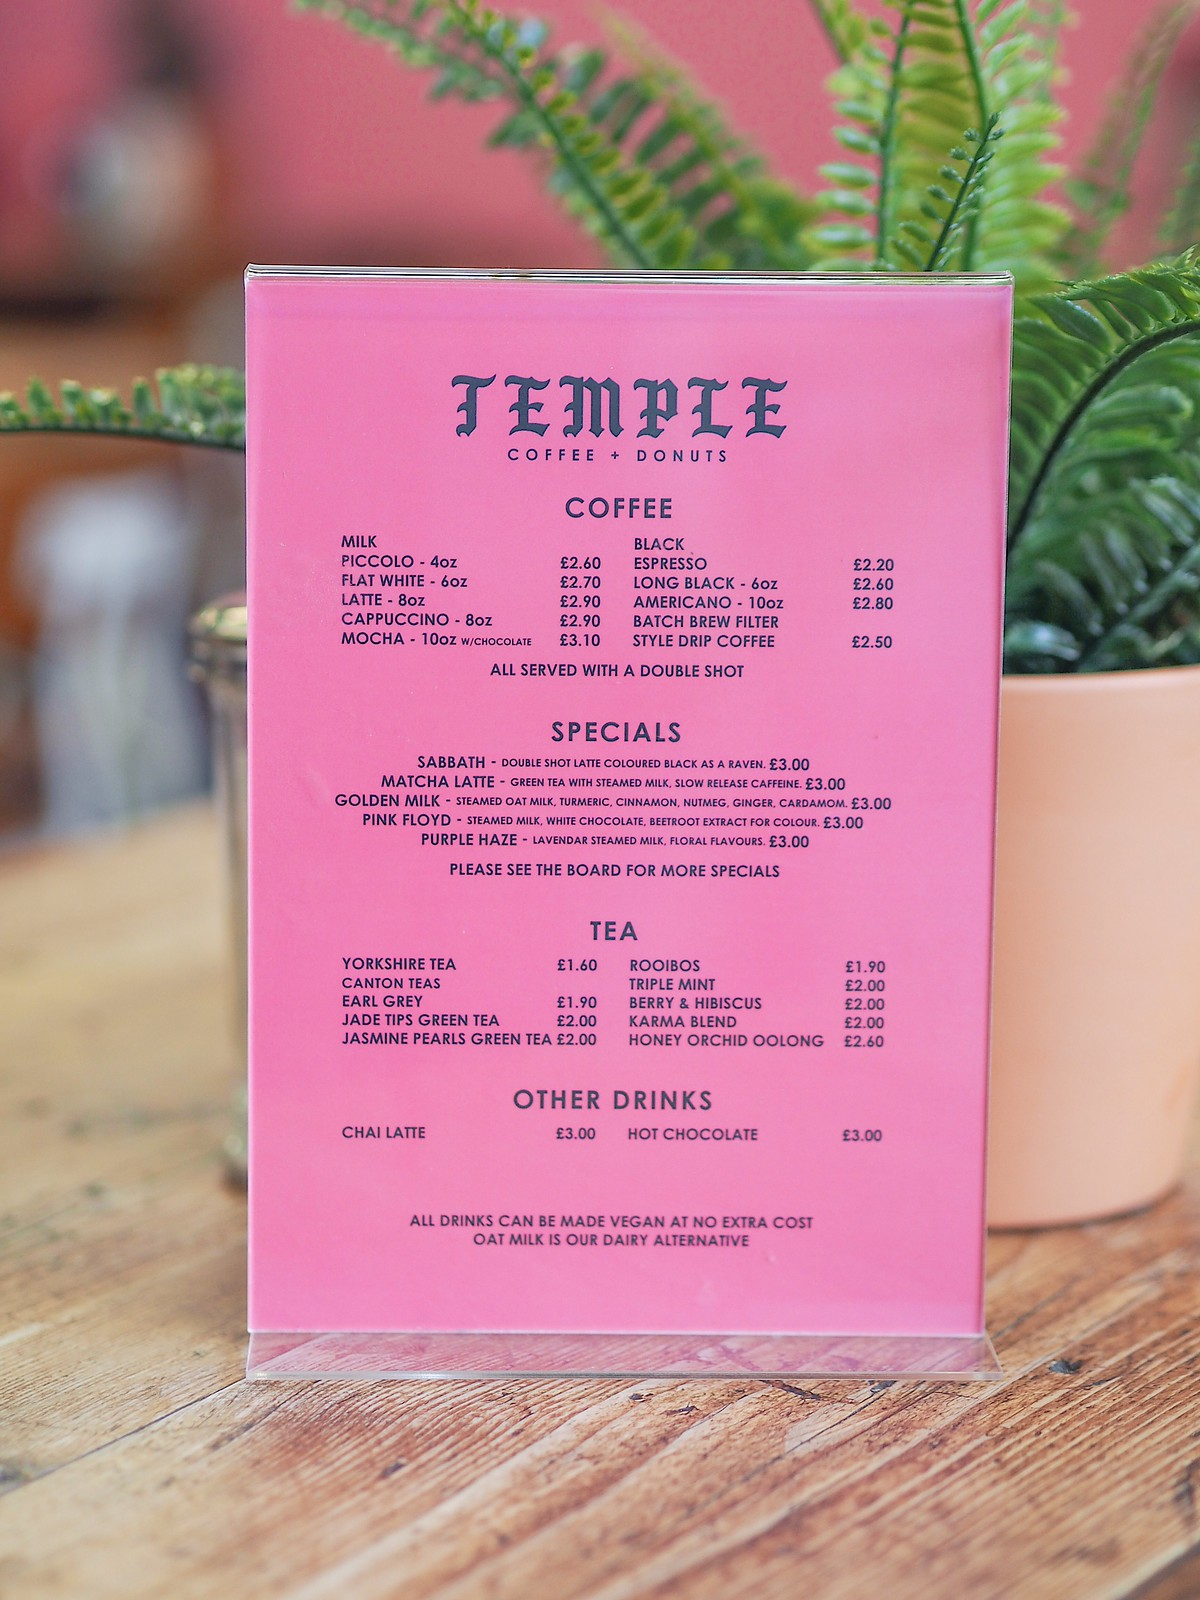 Temple coffee and Donuts Leeds